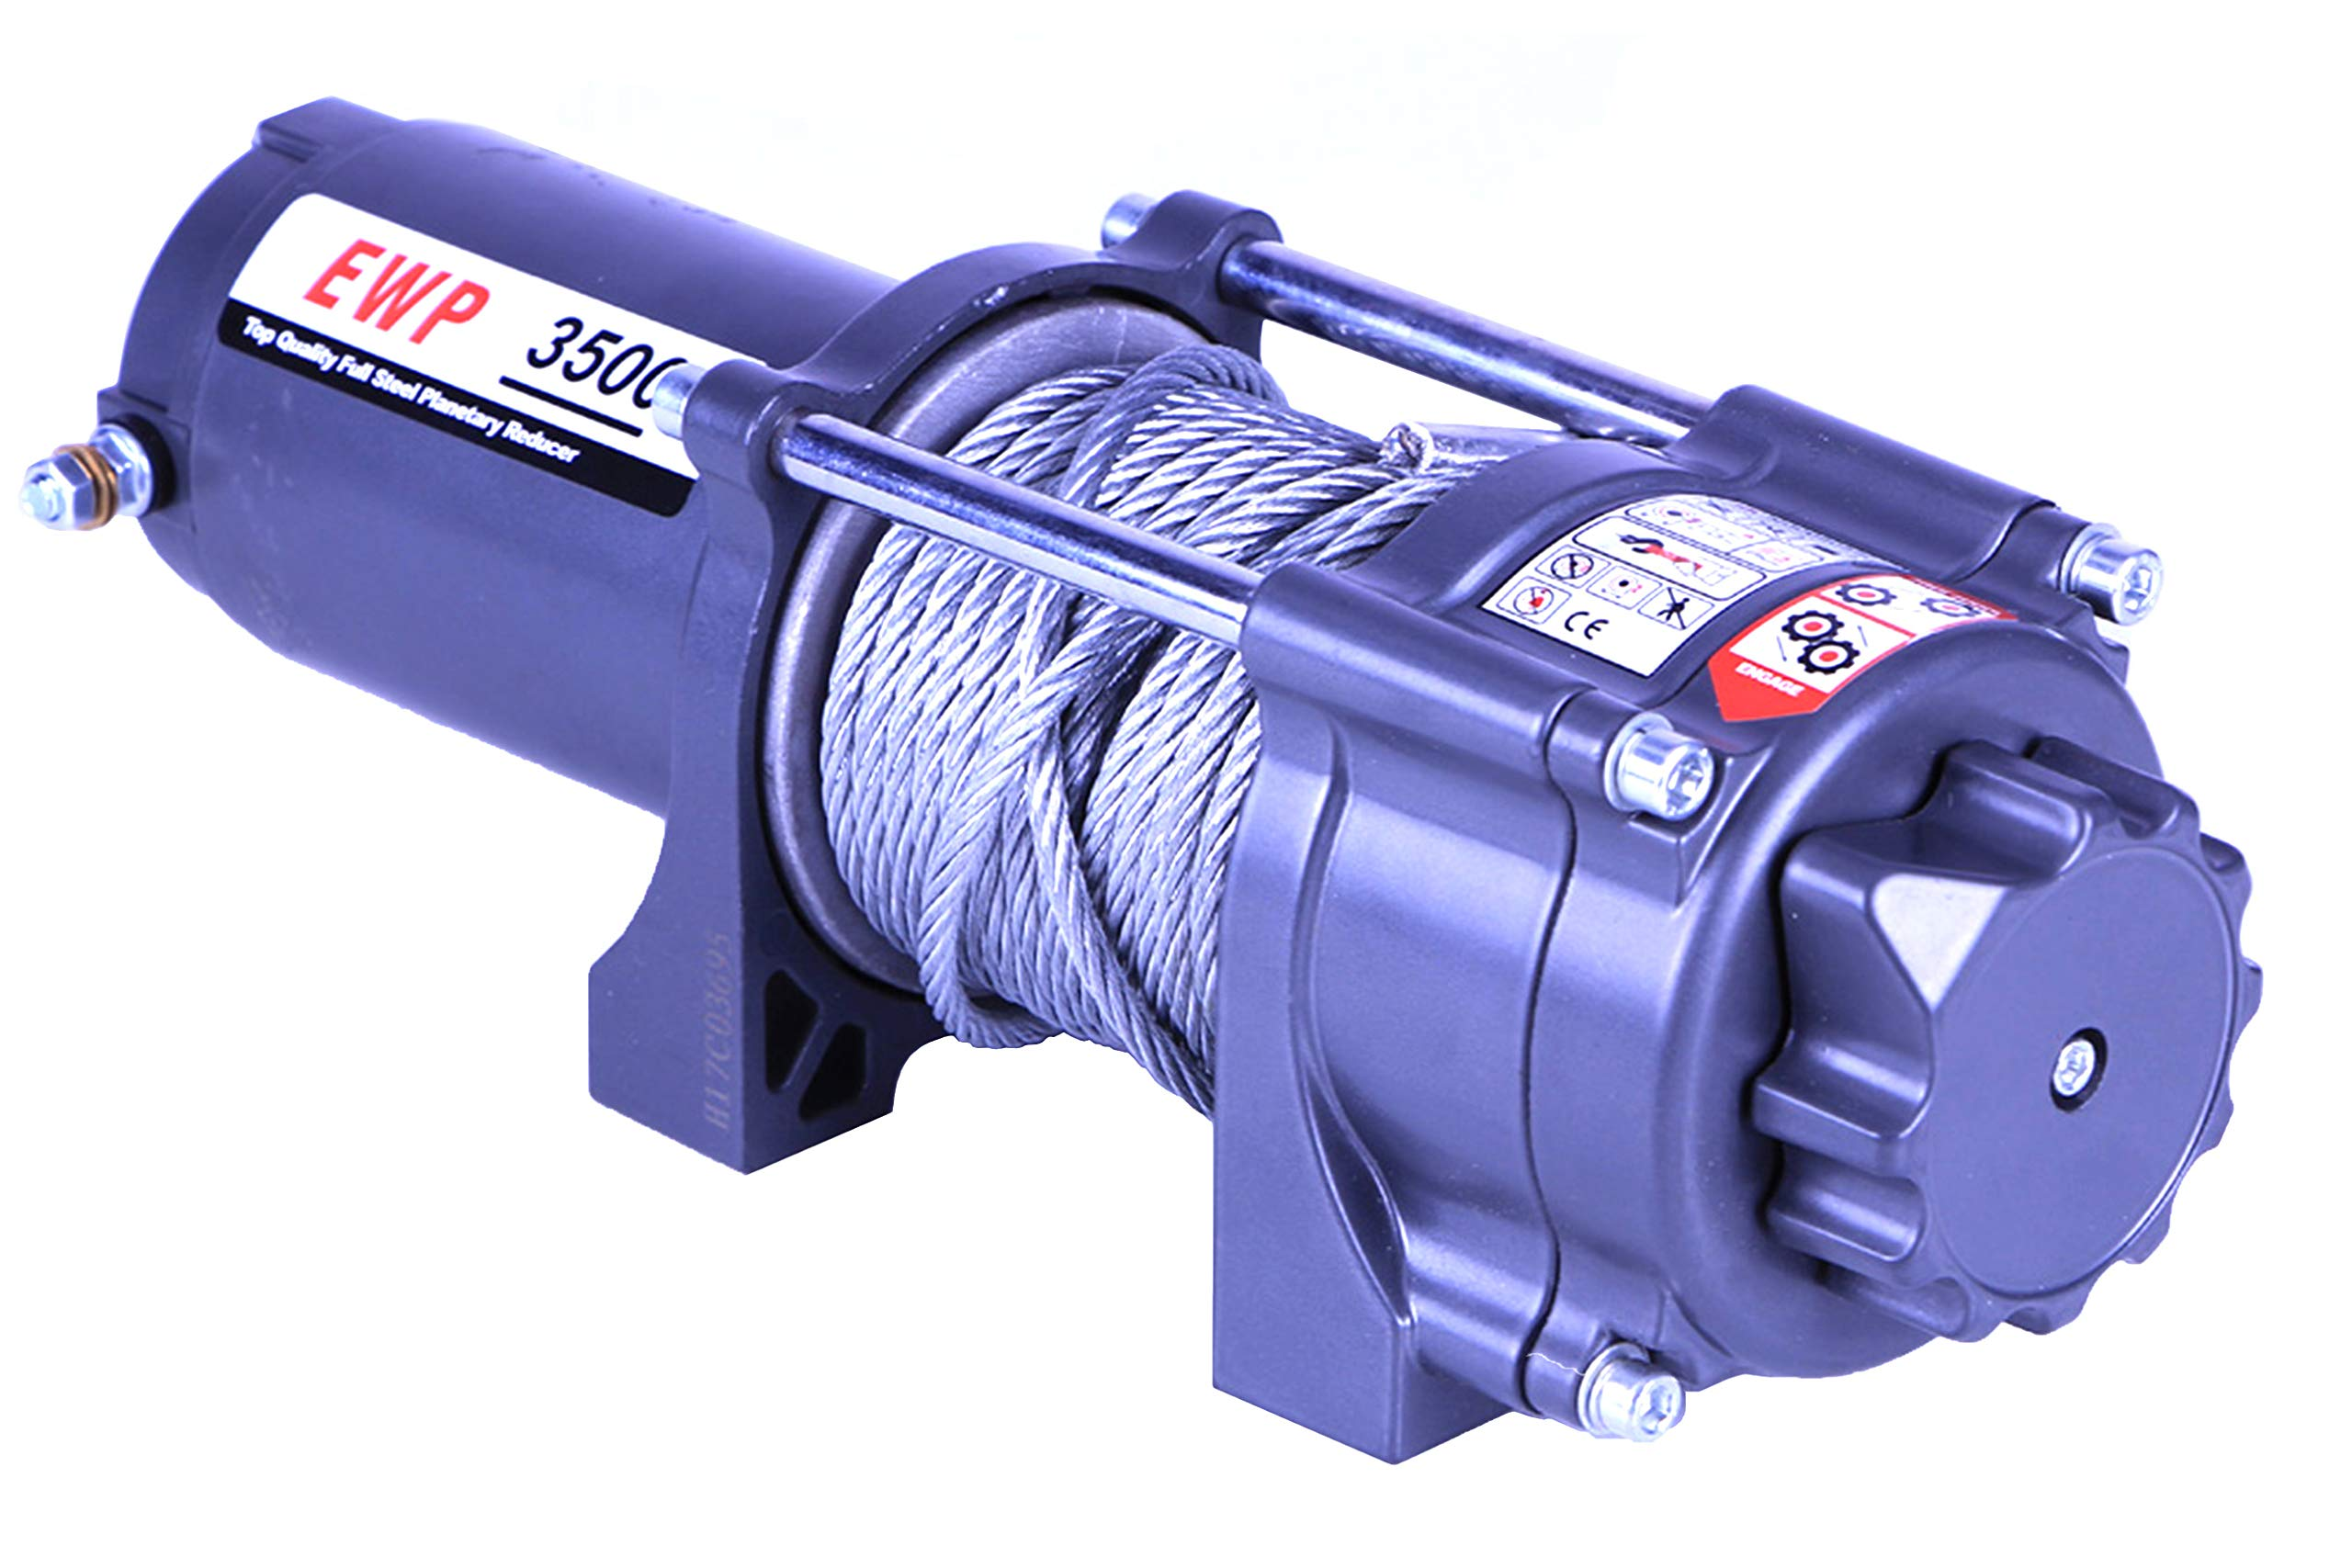 AC-DK 12V 3500lb ATV Winch UTV Winch Electric Winch Set for 4x4 Off Road (3500lb Winch with Cable) by AC-DK (Image #1)